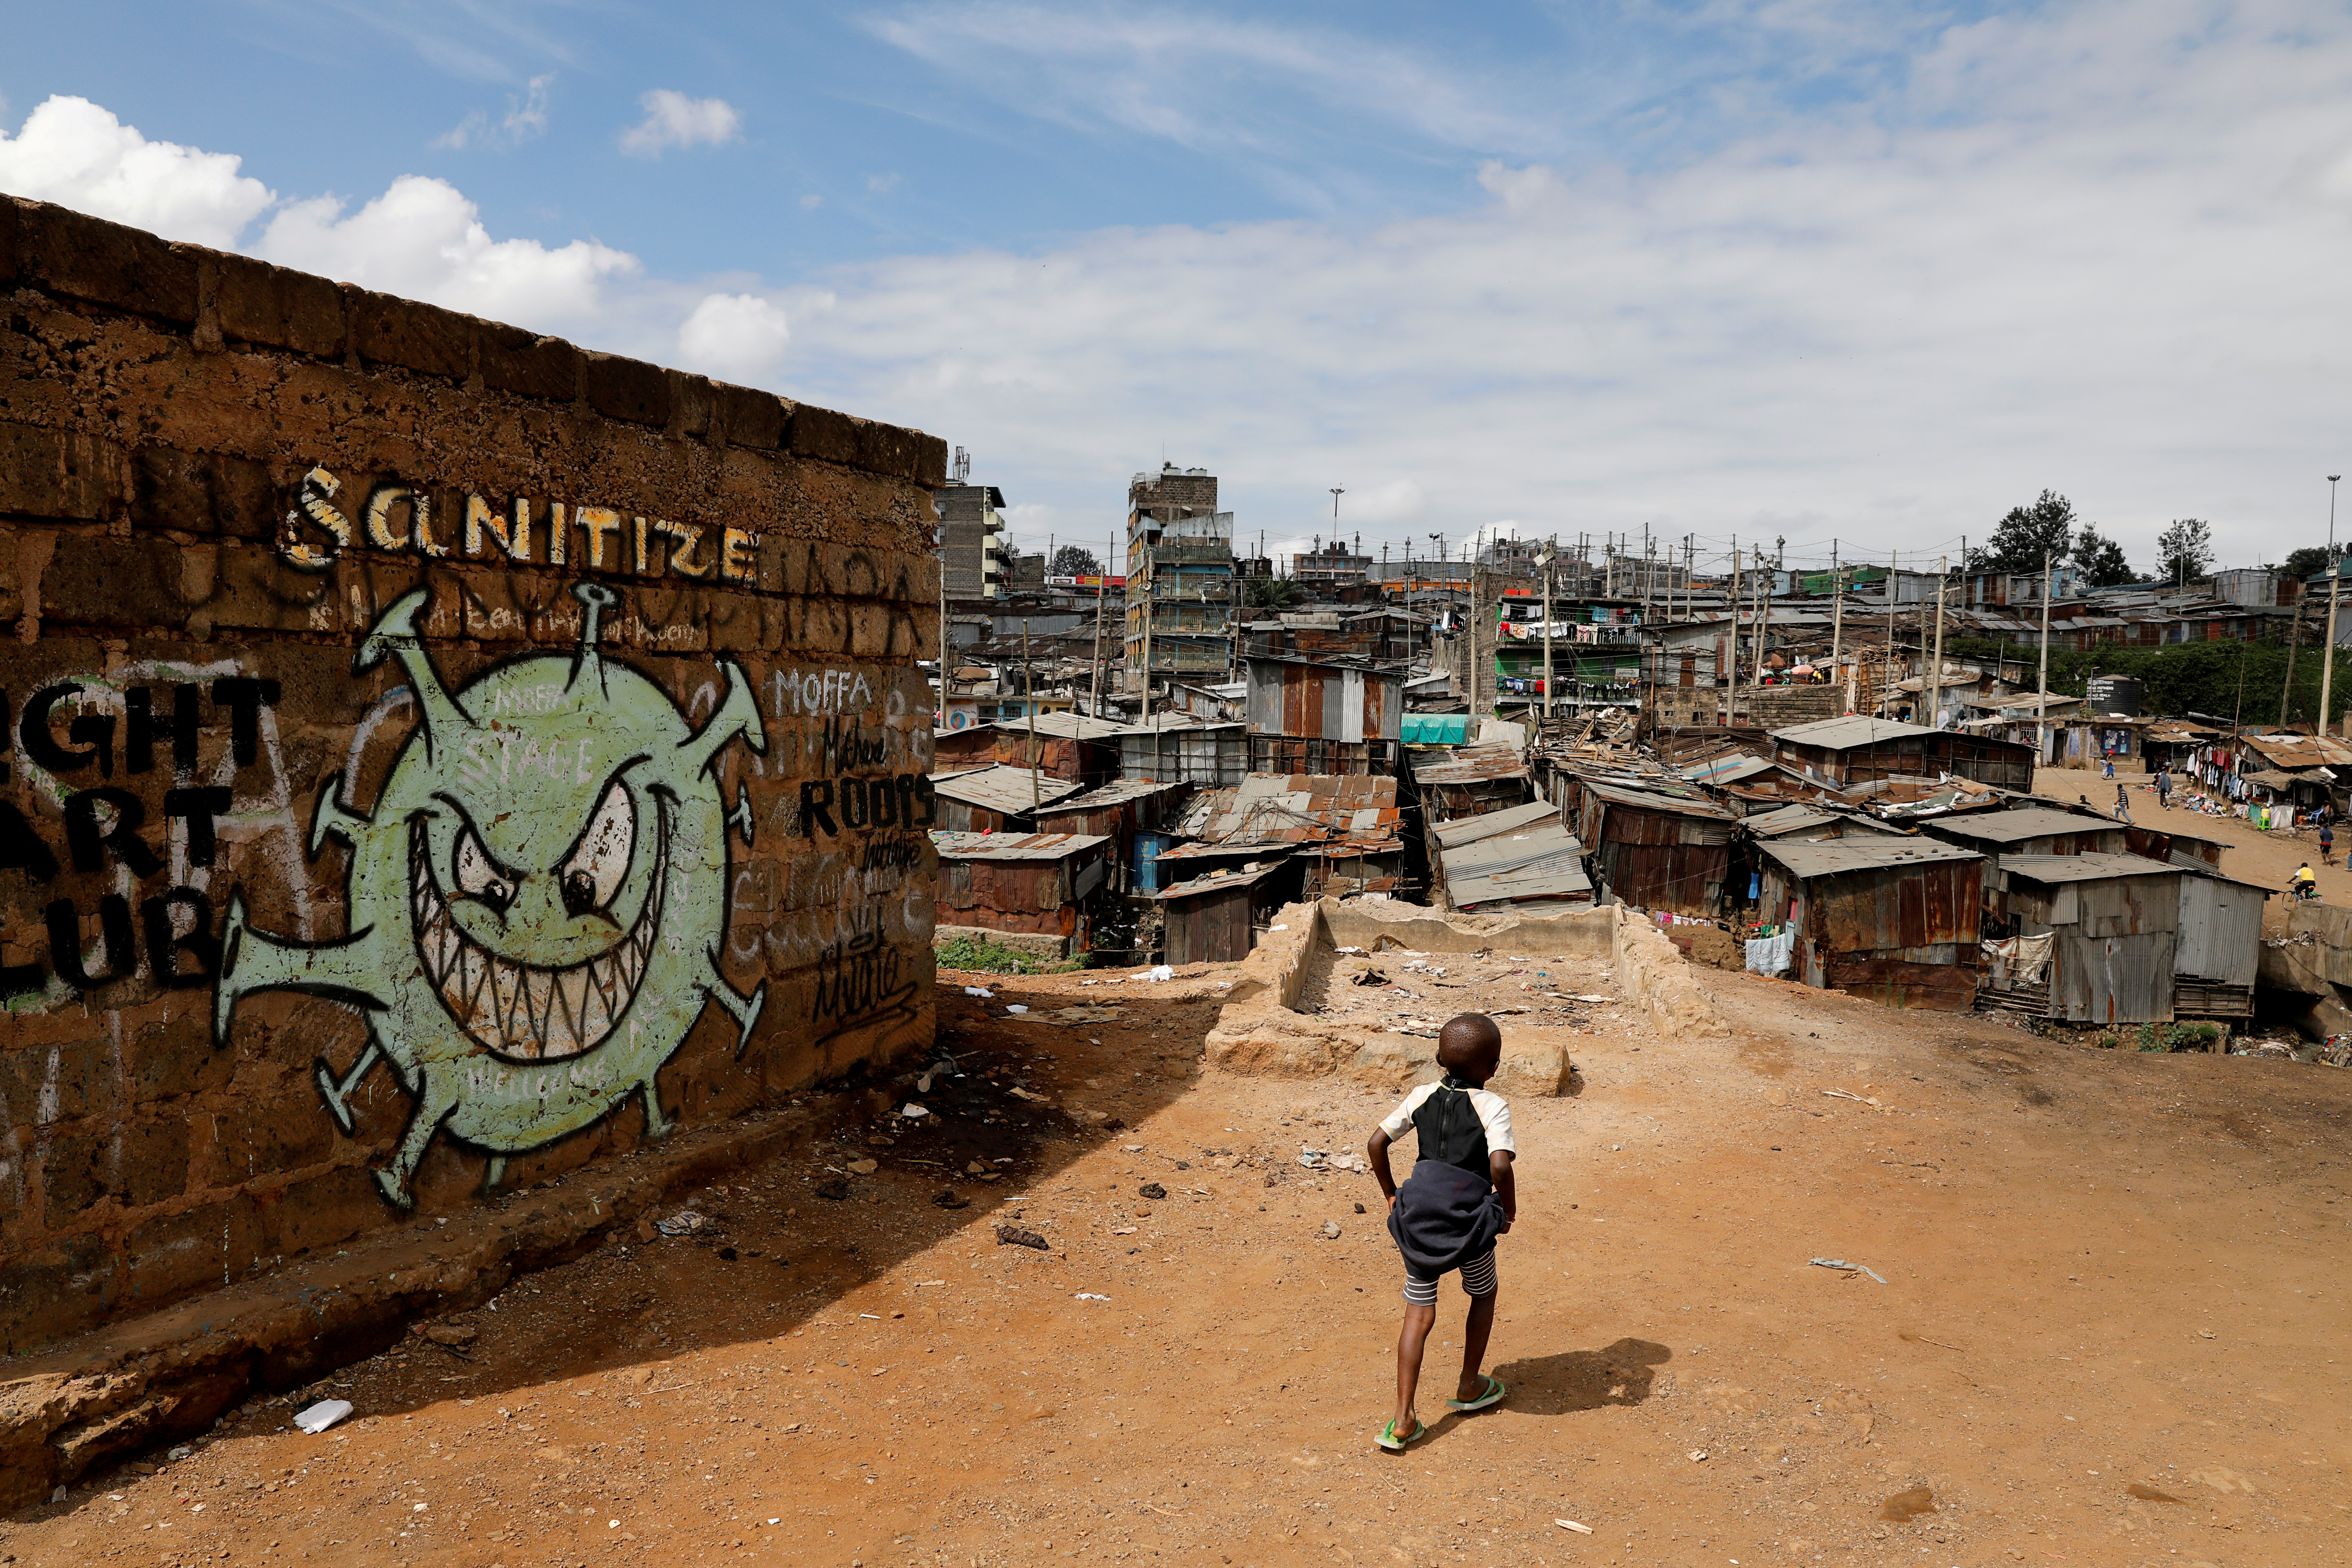 A boy walks in front of a graffiti promoting the fight against the coronavirus disease (COVID-19) in the Mathare slums of Nairobi, Kenya, May 22, 2020.  REUTERS/Baz Ratner/File Photo